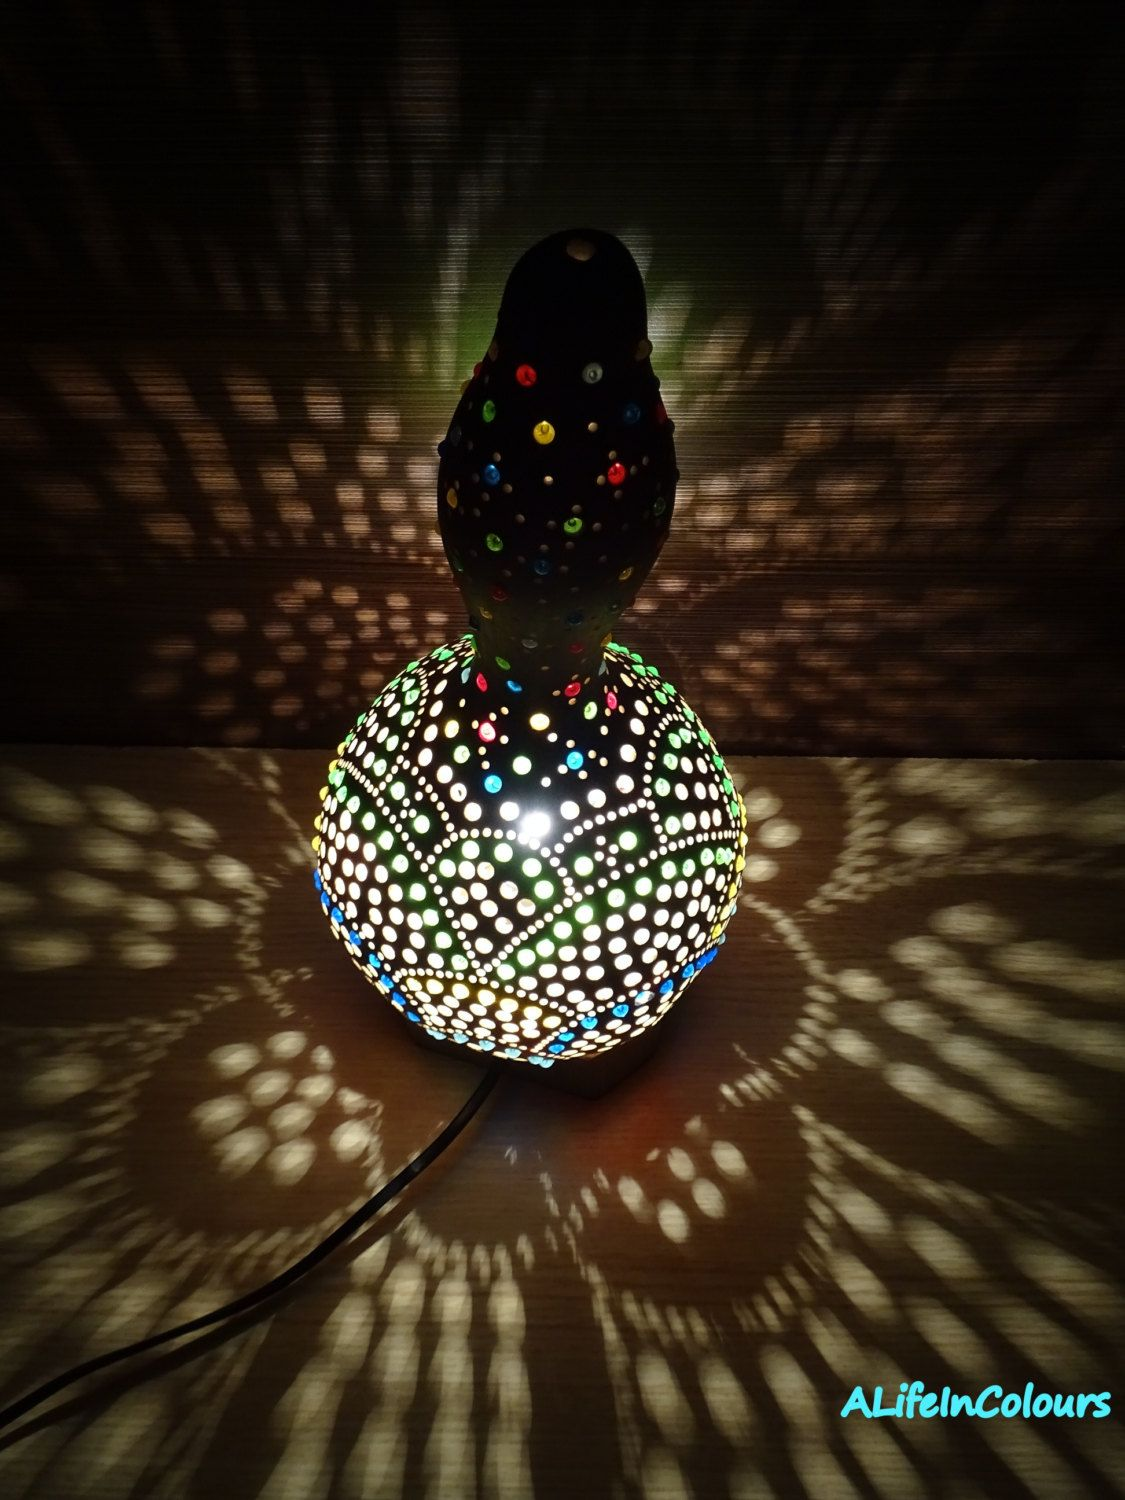 Night Lamps For Bedroom Colourful Unique Decorative Handmade Table Gourd Lamp Bedside